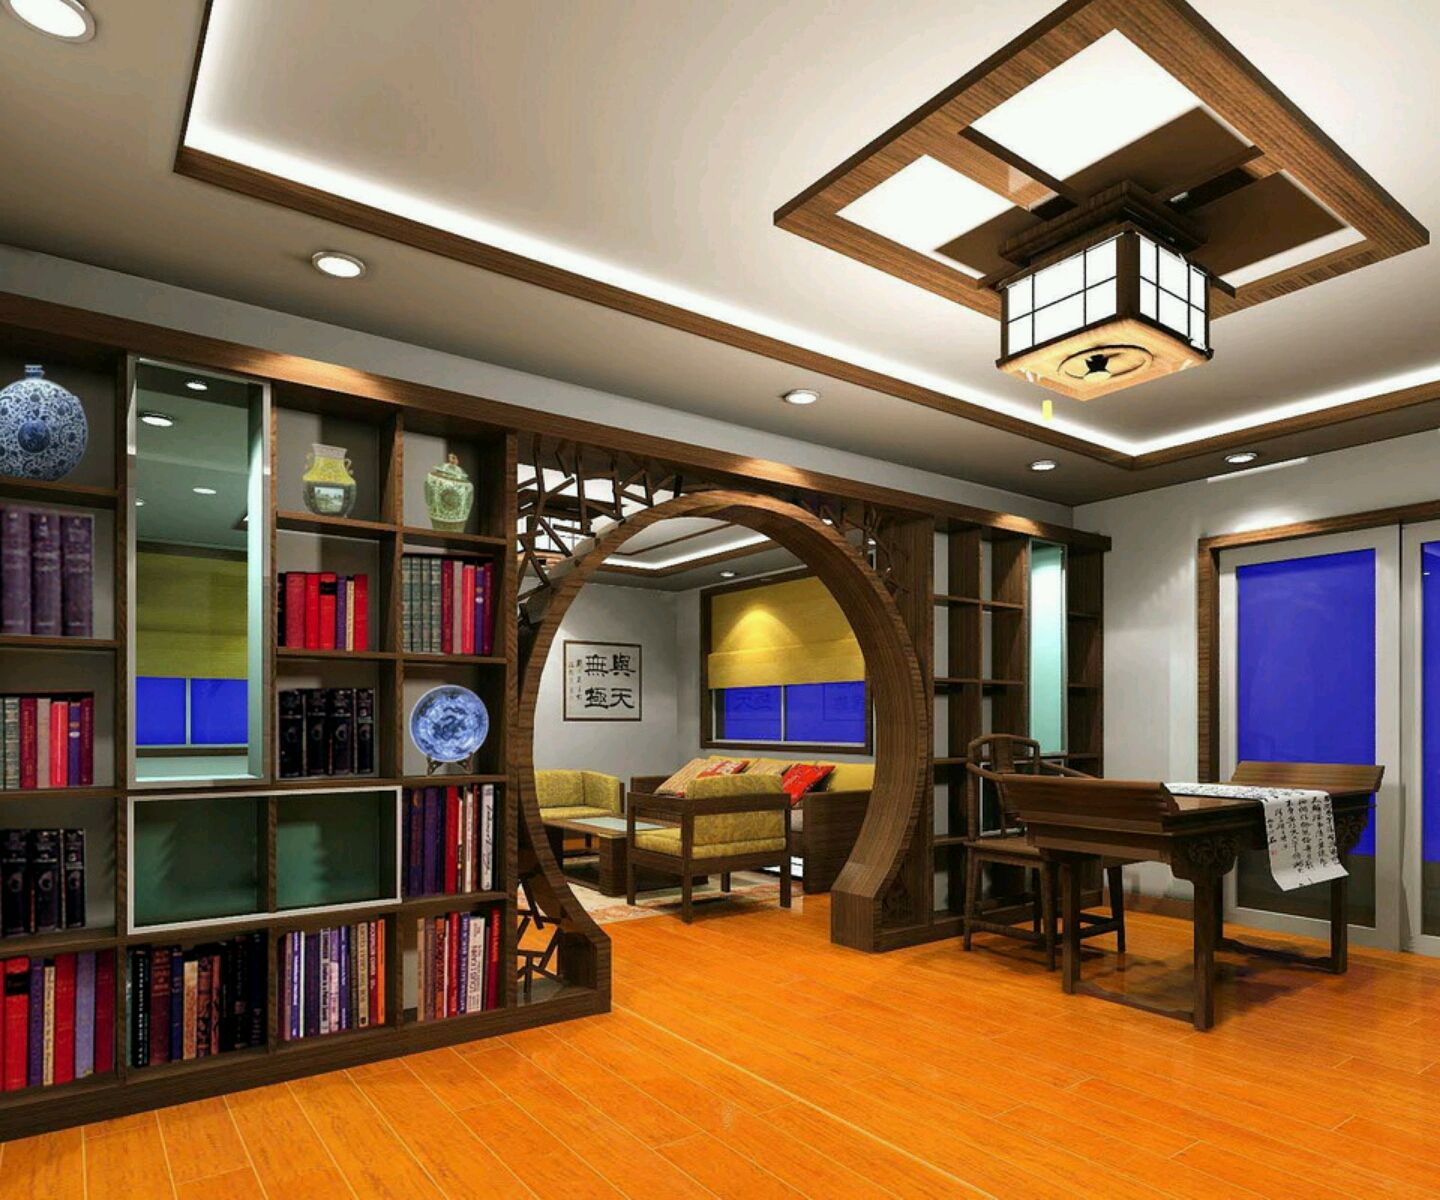 Study design ideas modern study room furnitures designs for Interior designs study room